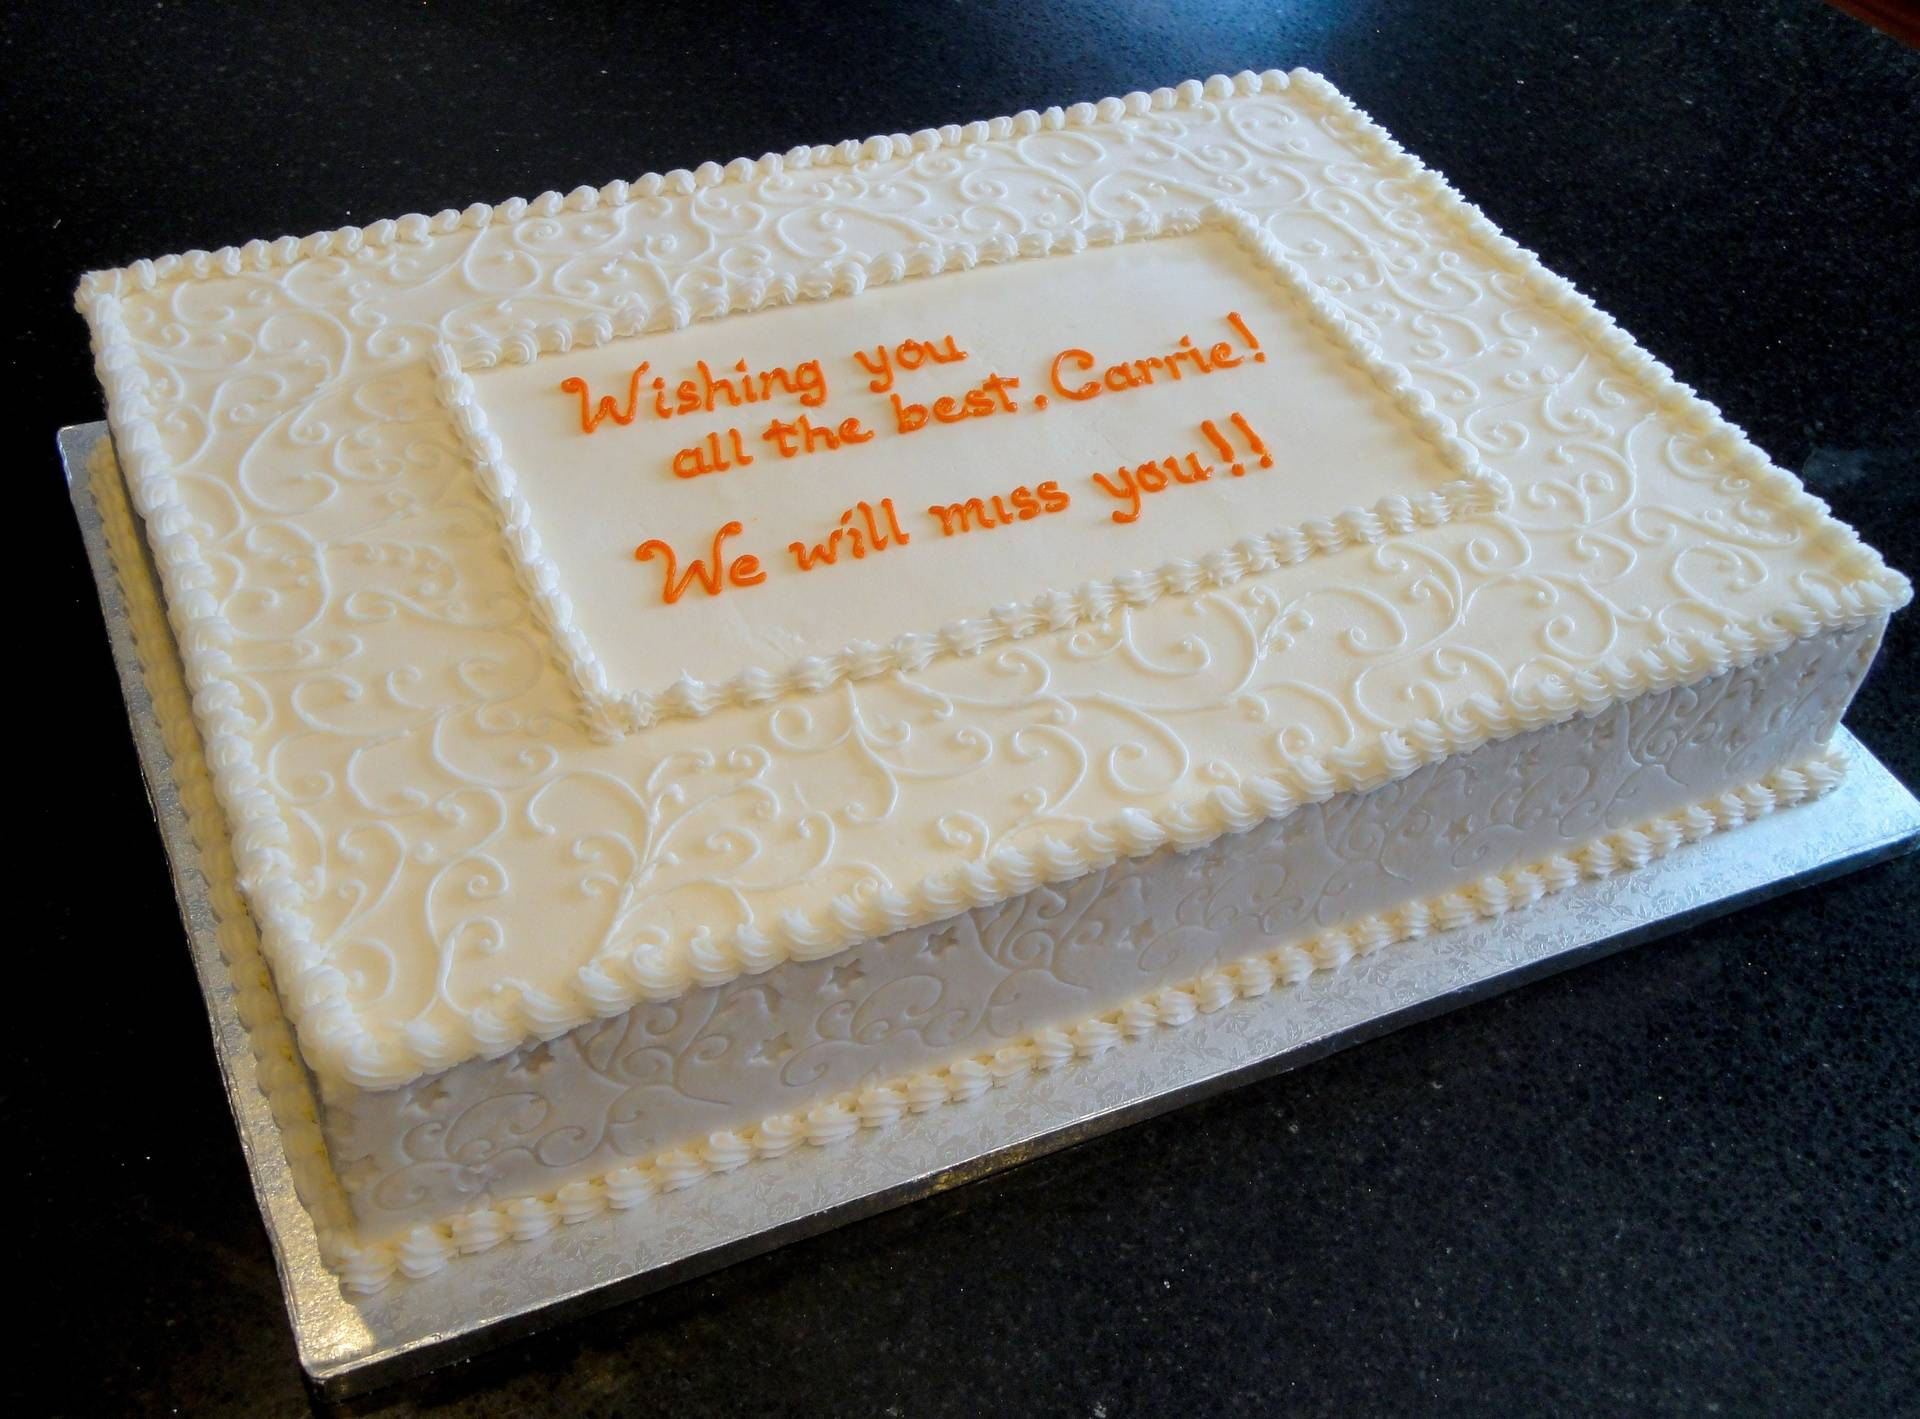 We'll Miss You!  Corporate Cake